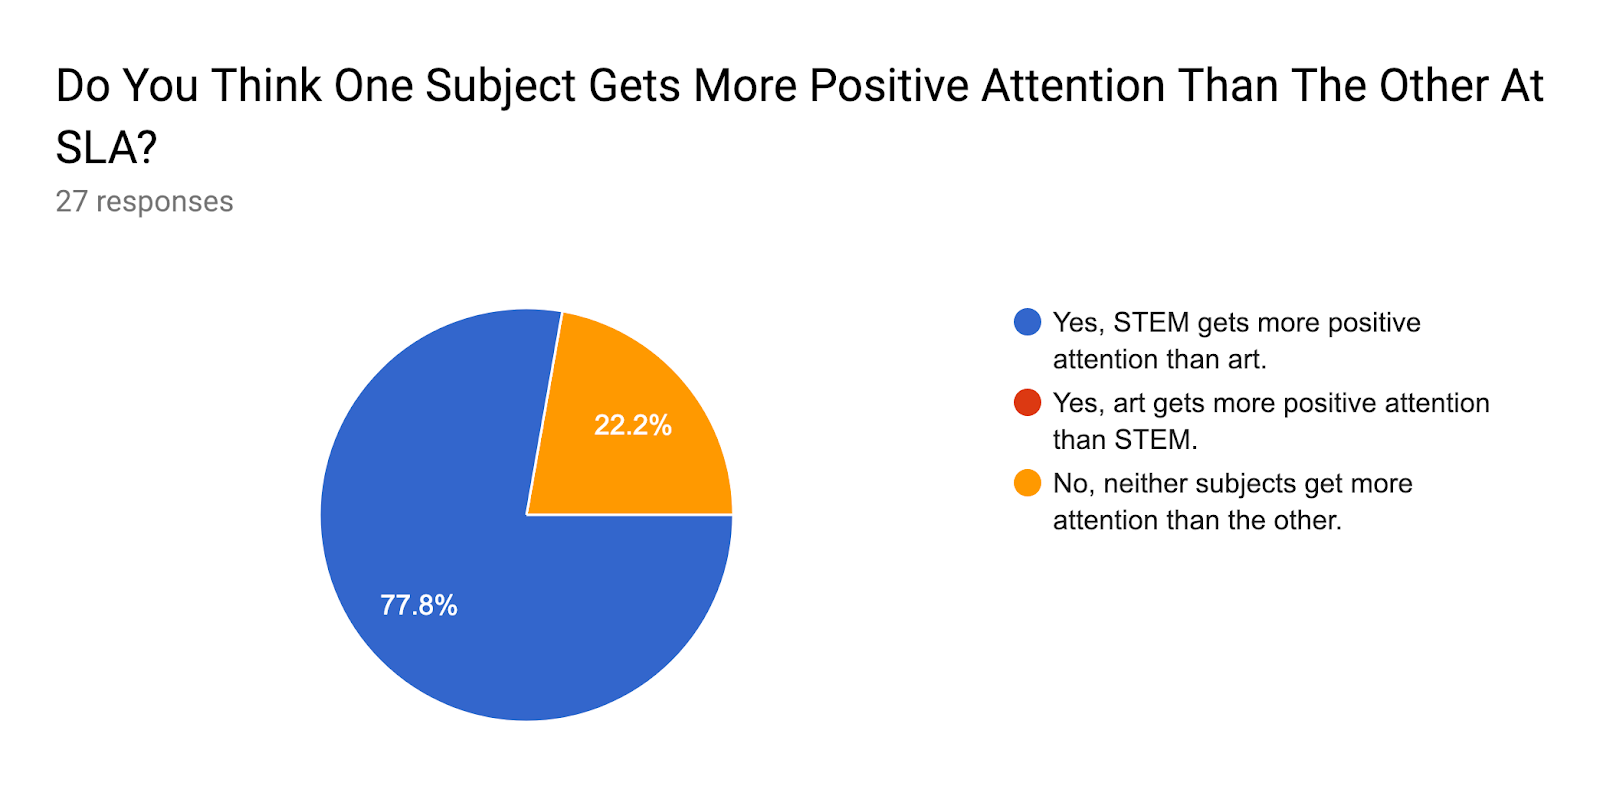 Forms response chart. Question title: Do You Think One Subject Gets More Positive Attention Than The Other At SLA?. Number of responses: 27 responses.